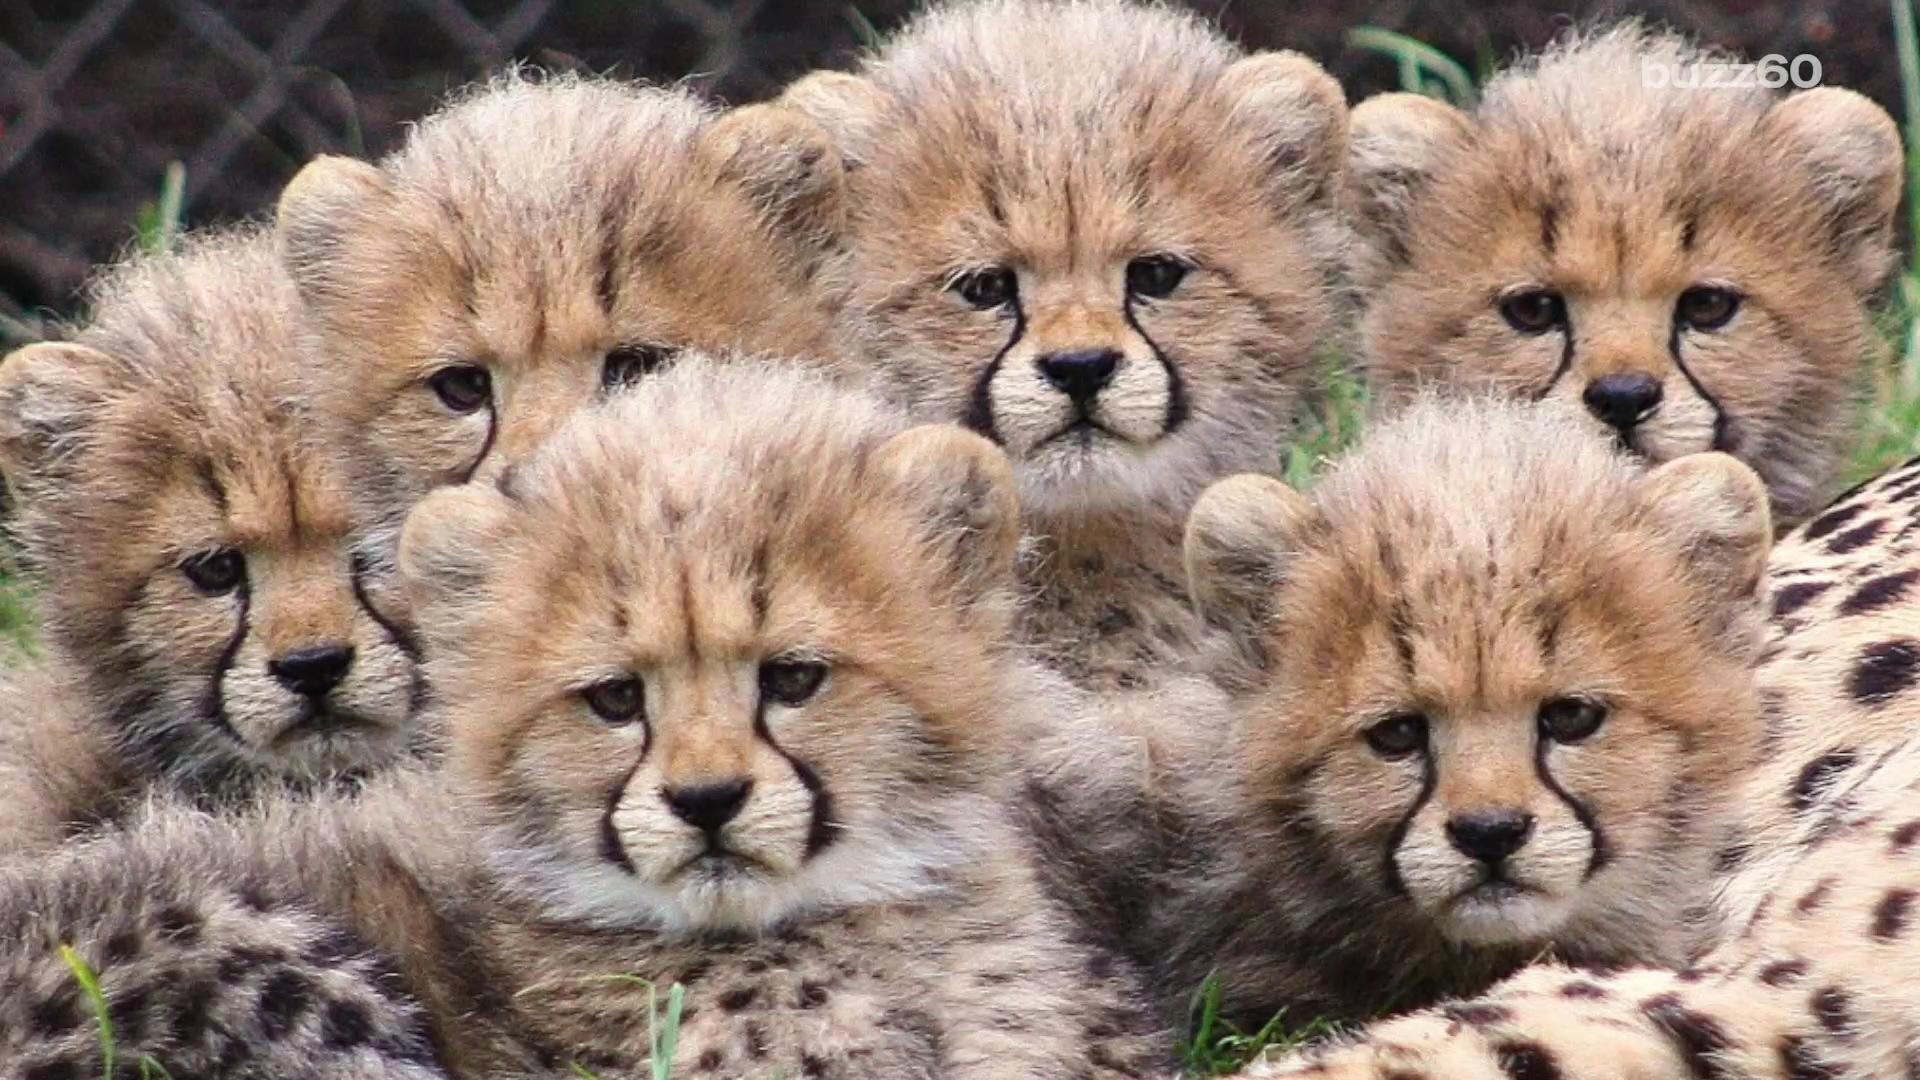 Cute Baby Cheetah Cubs Wallpaper Video Of Six Cheetah Cubs Playing Will Make Your Day